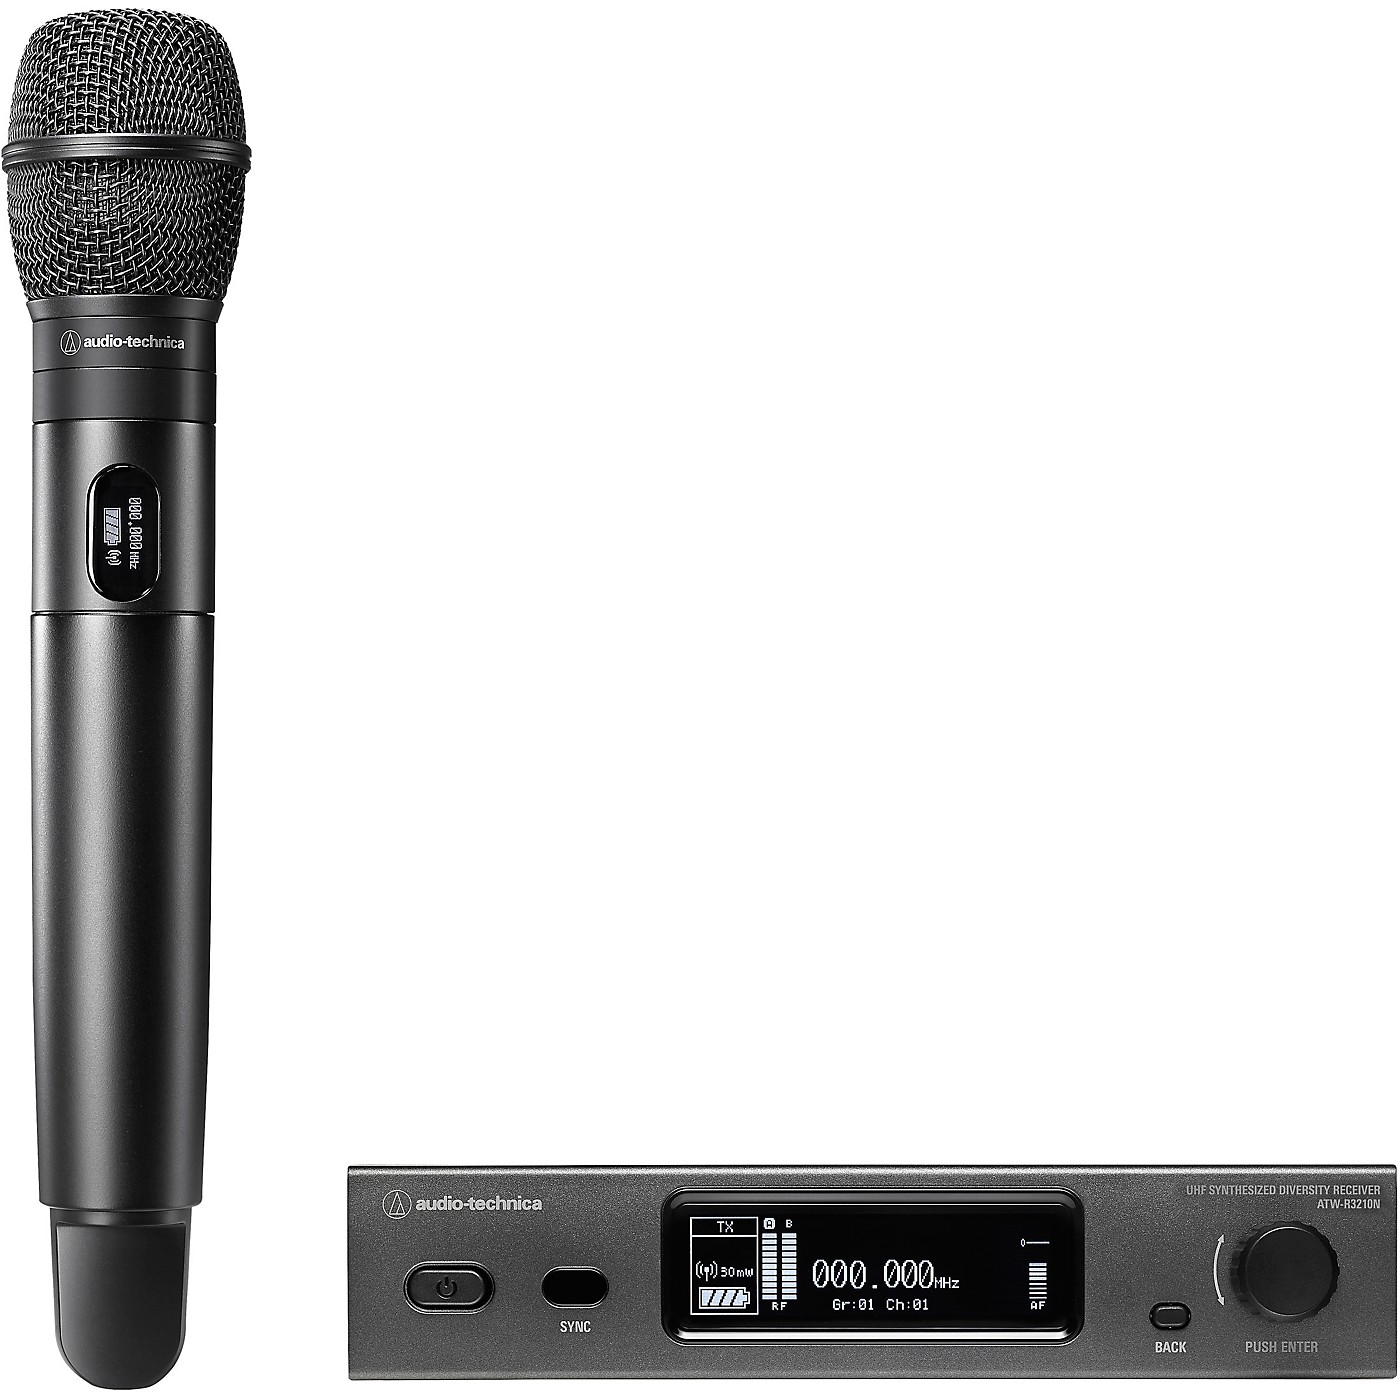 Audio-Technica 3000 Series (4th Gen) Network Enabled UHF Wireless with ATW-C710 Cardioid Dynamic Microphone Capsule thumbnail